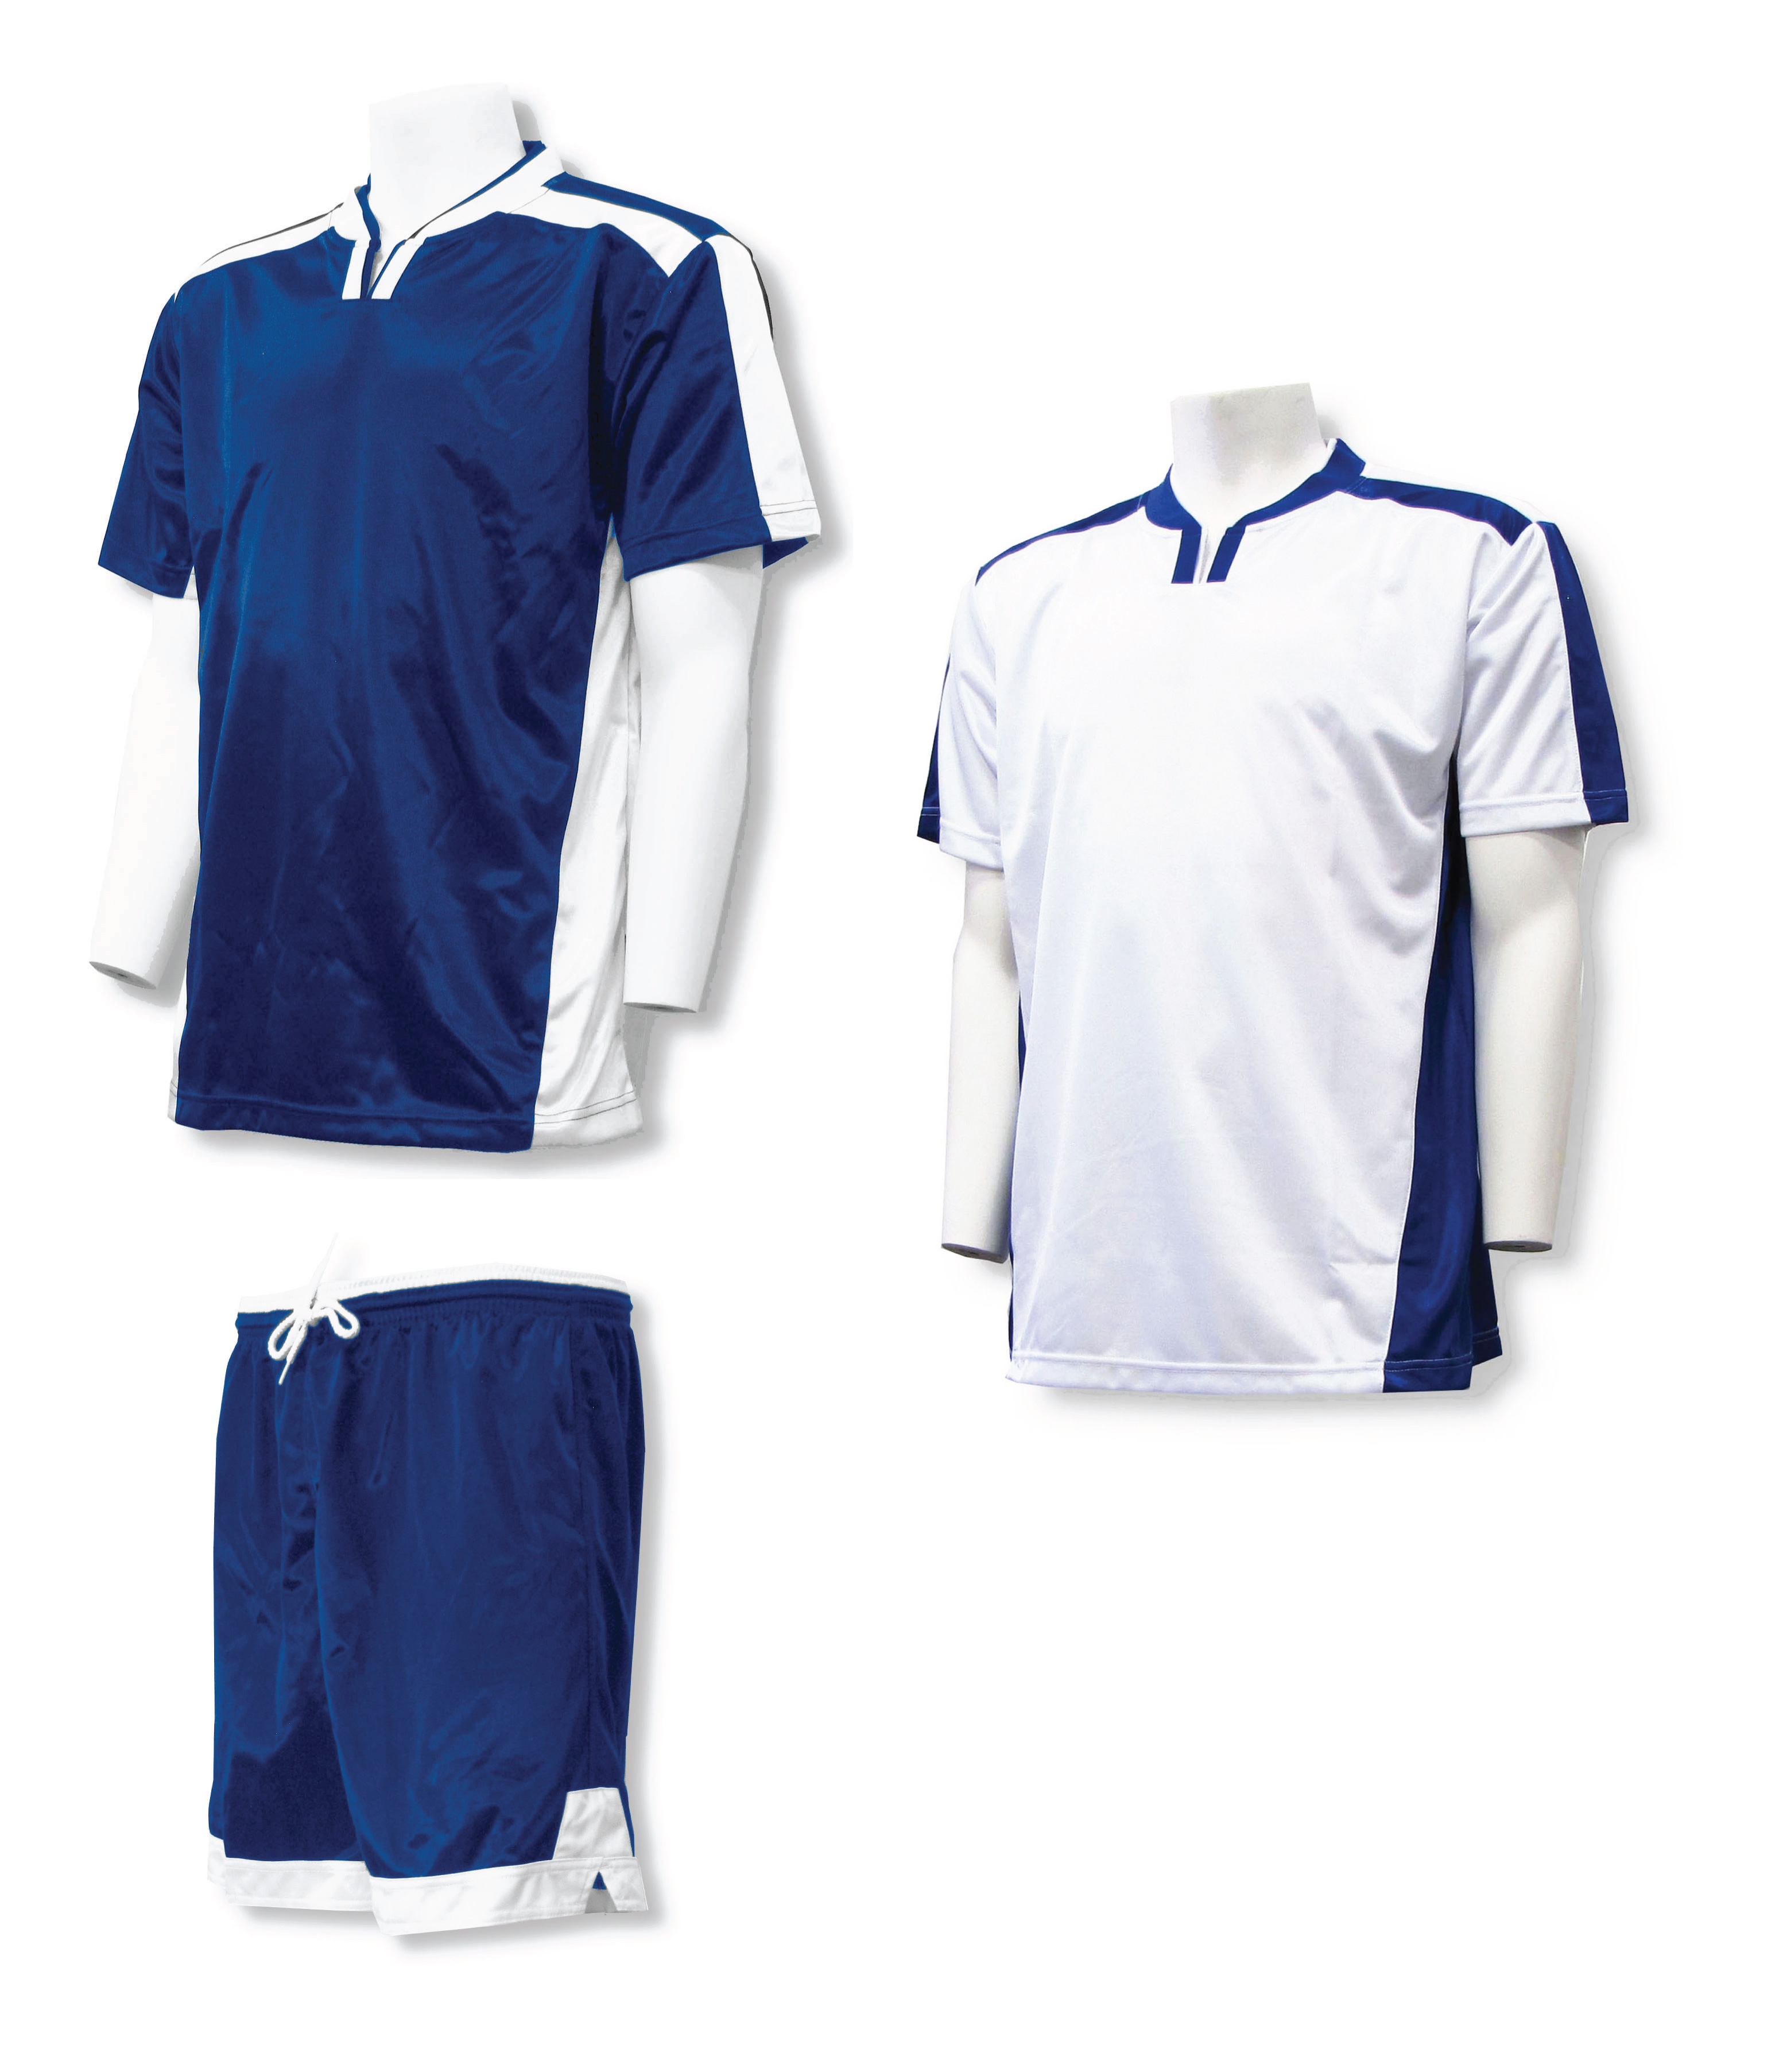 Winchester soccer uniform kit in navy/white by Code Four Athletics